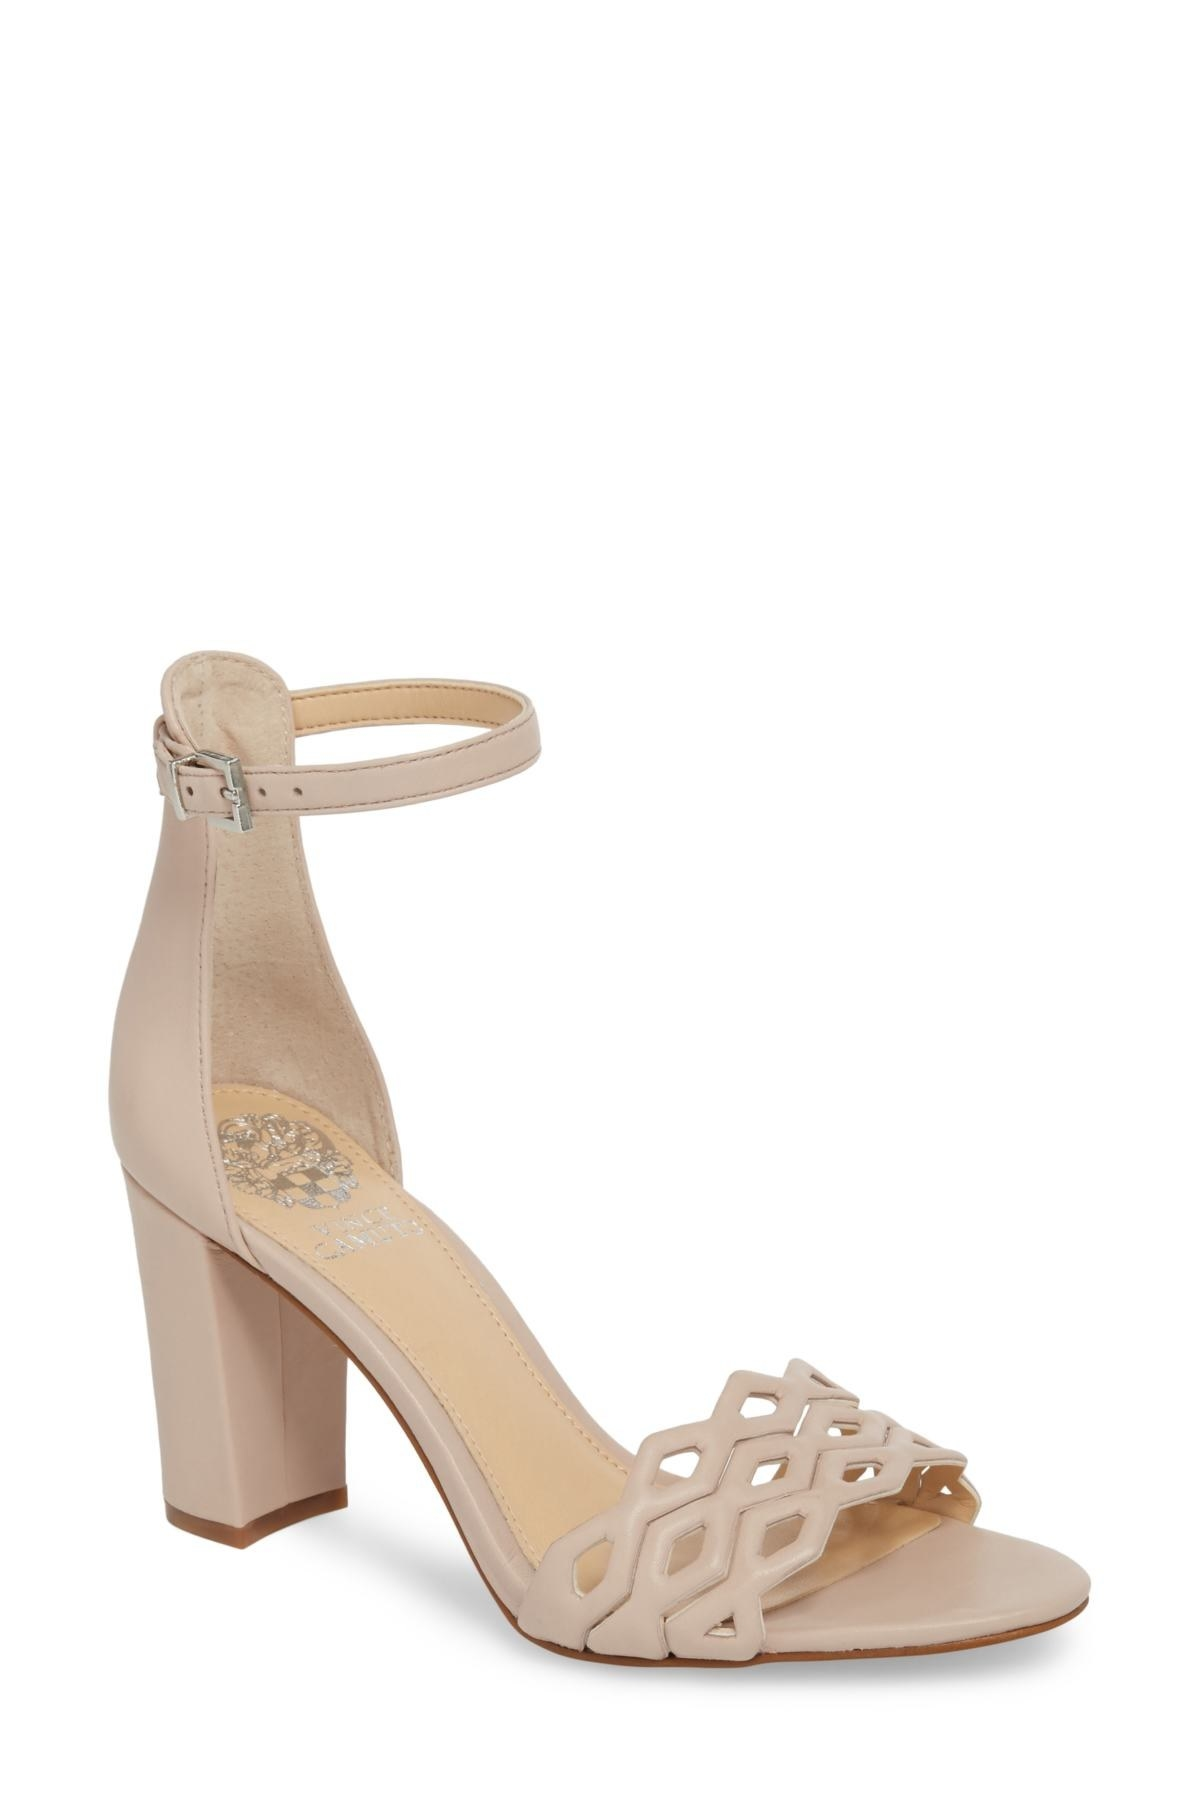 34cfbbc7416 Take up to 50% off Vince Camuto shoes at Nordstrom Rack.